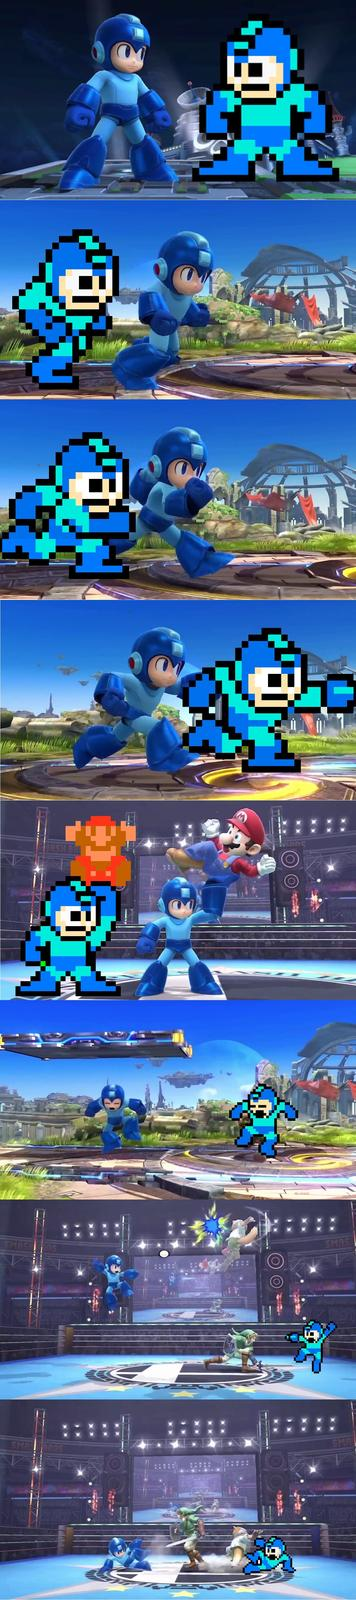 Megaman's basic moves are intact